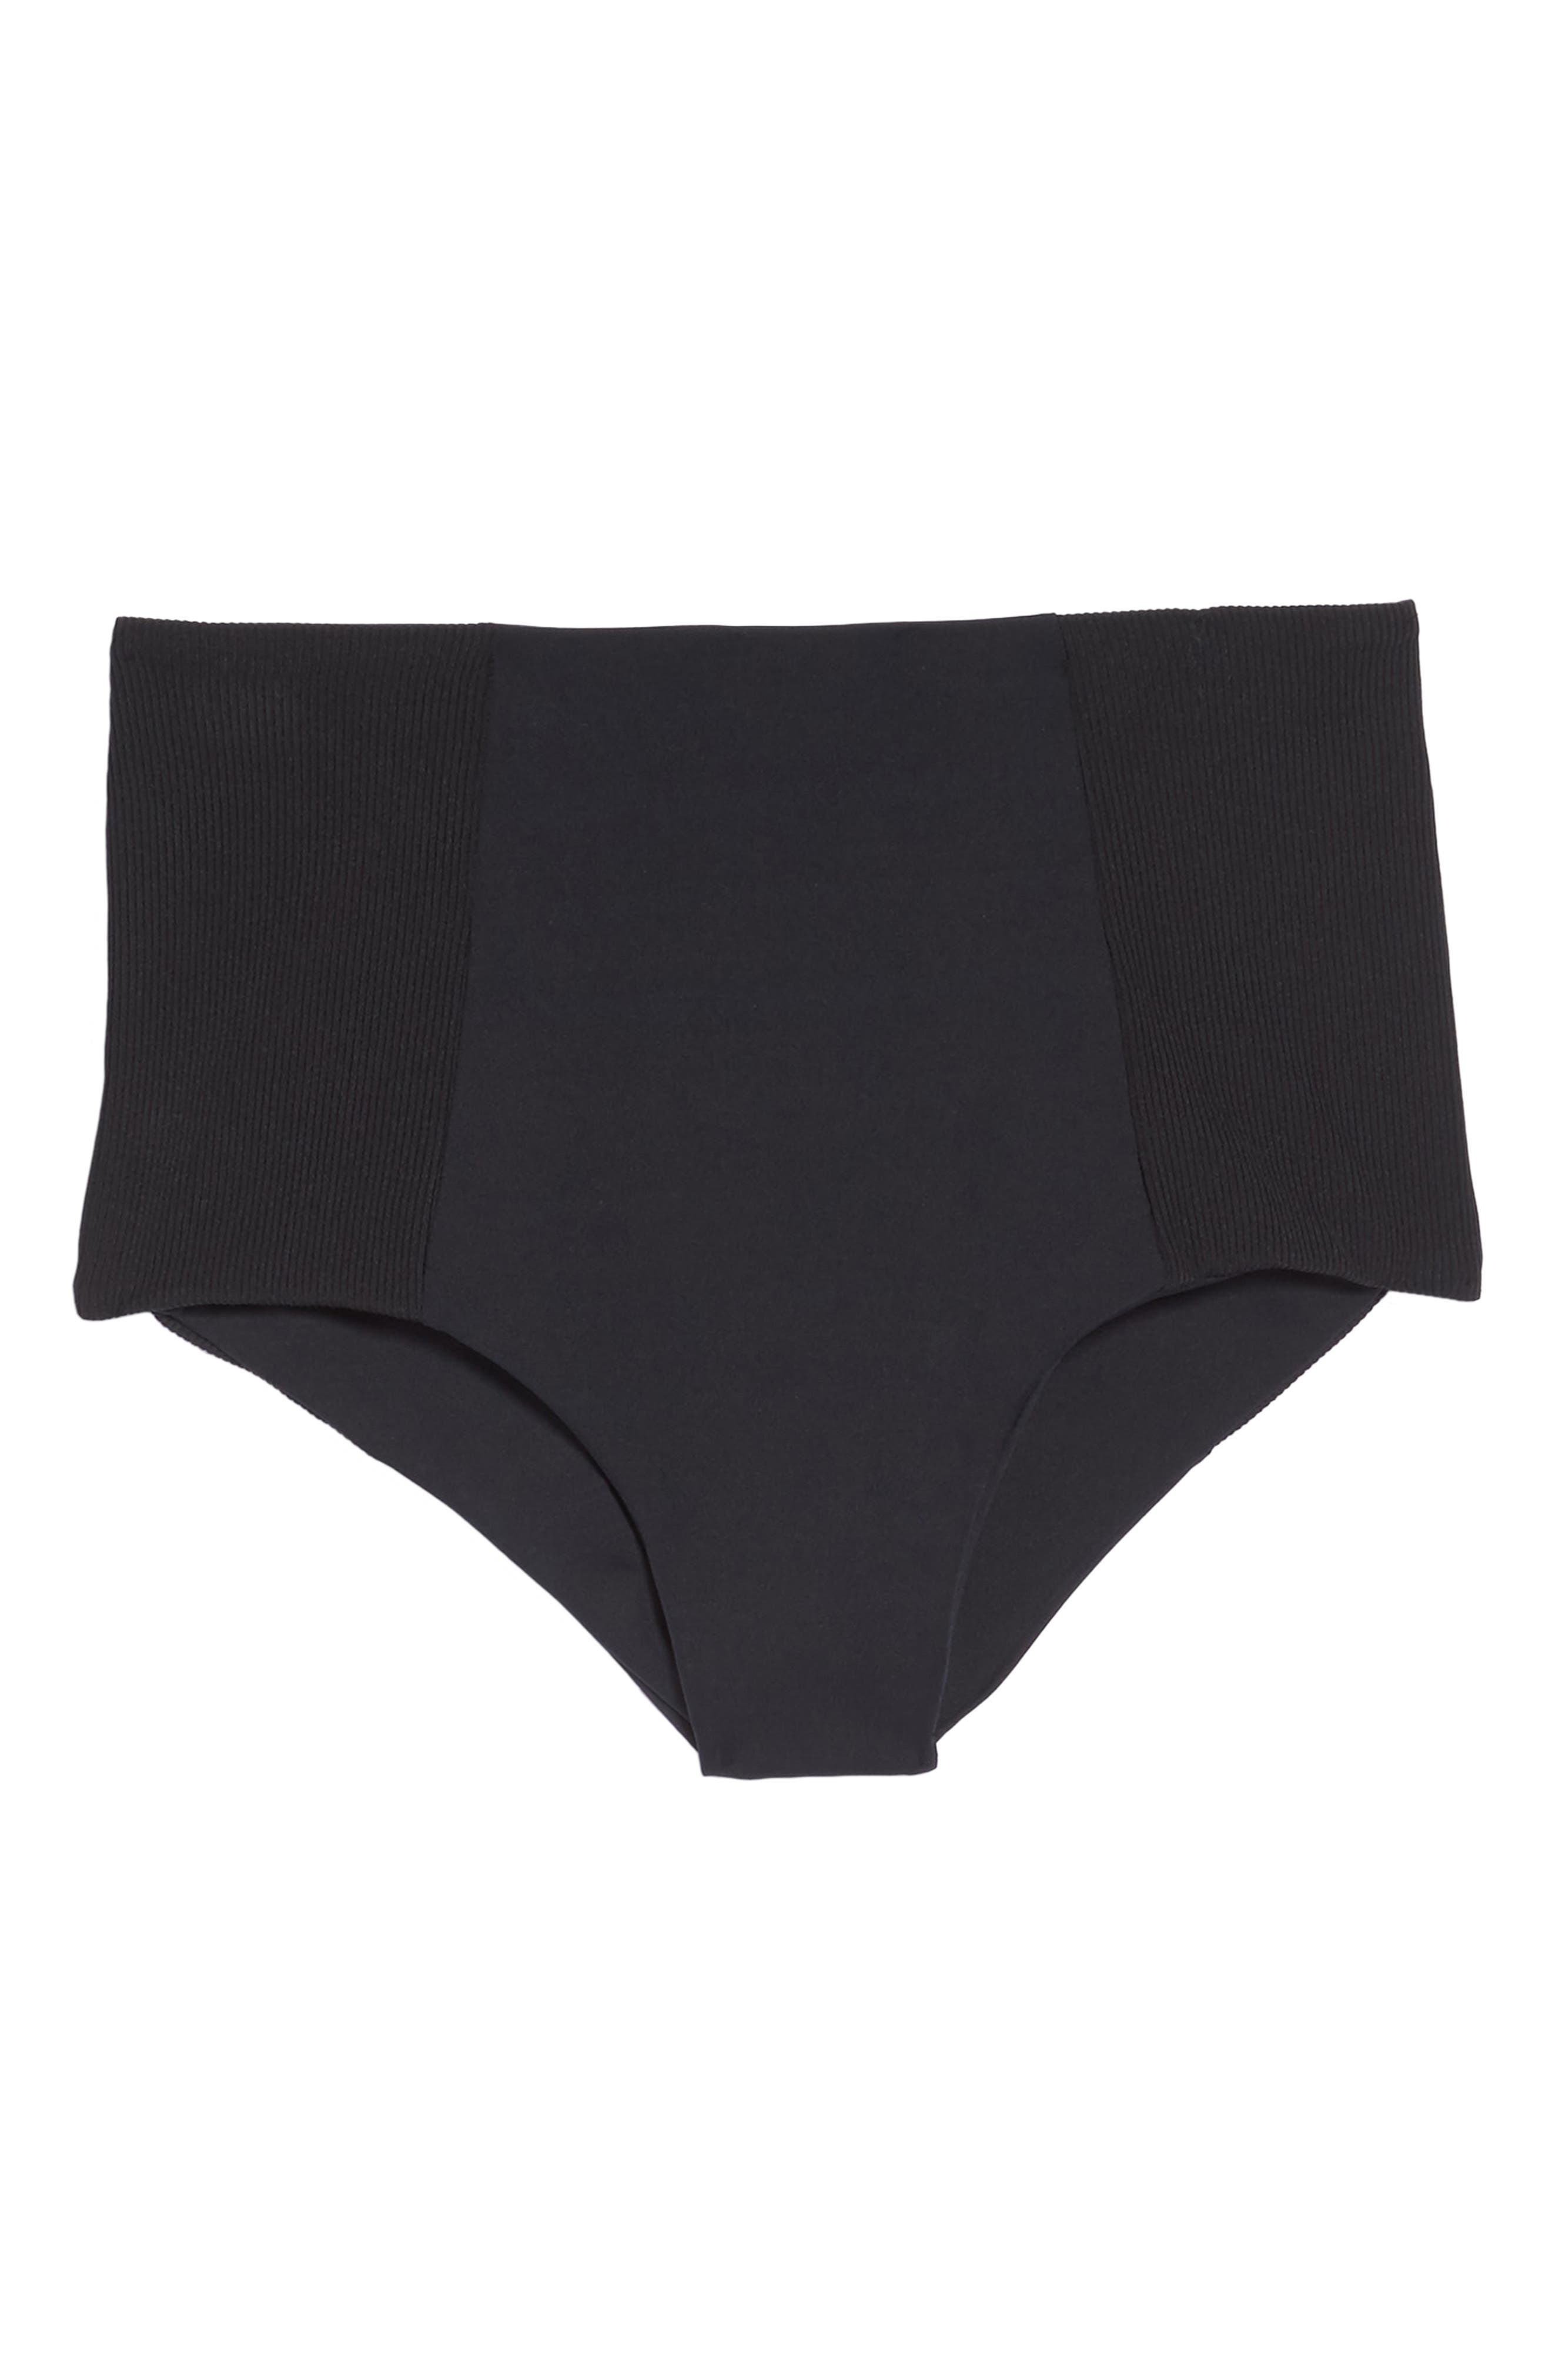 Jackie High Waist Bikini Bottoms,                             Alternate thumbnail 6, color,                             BLACK